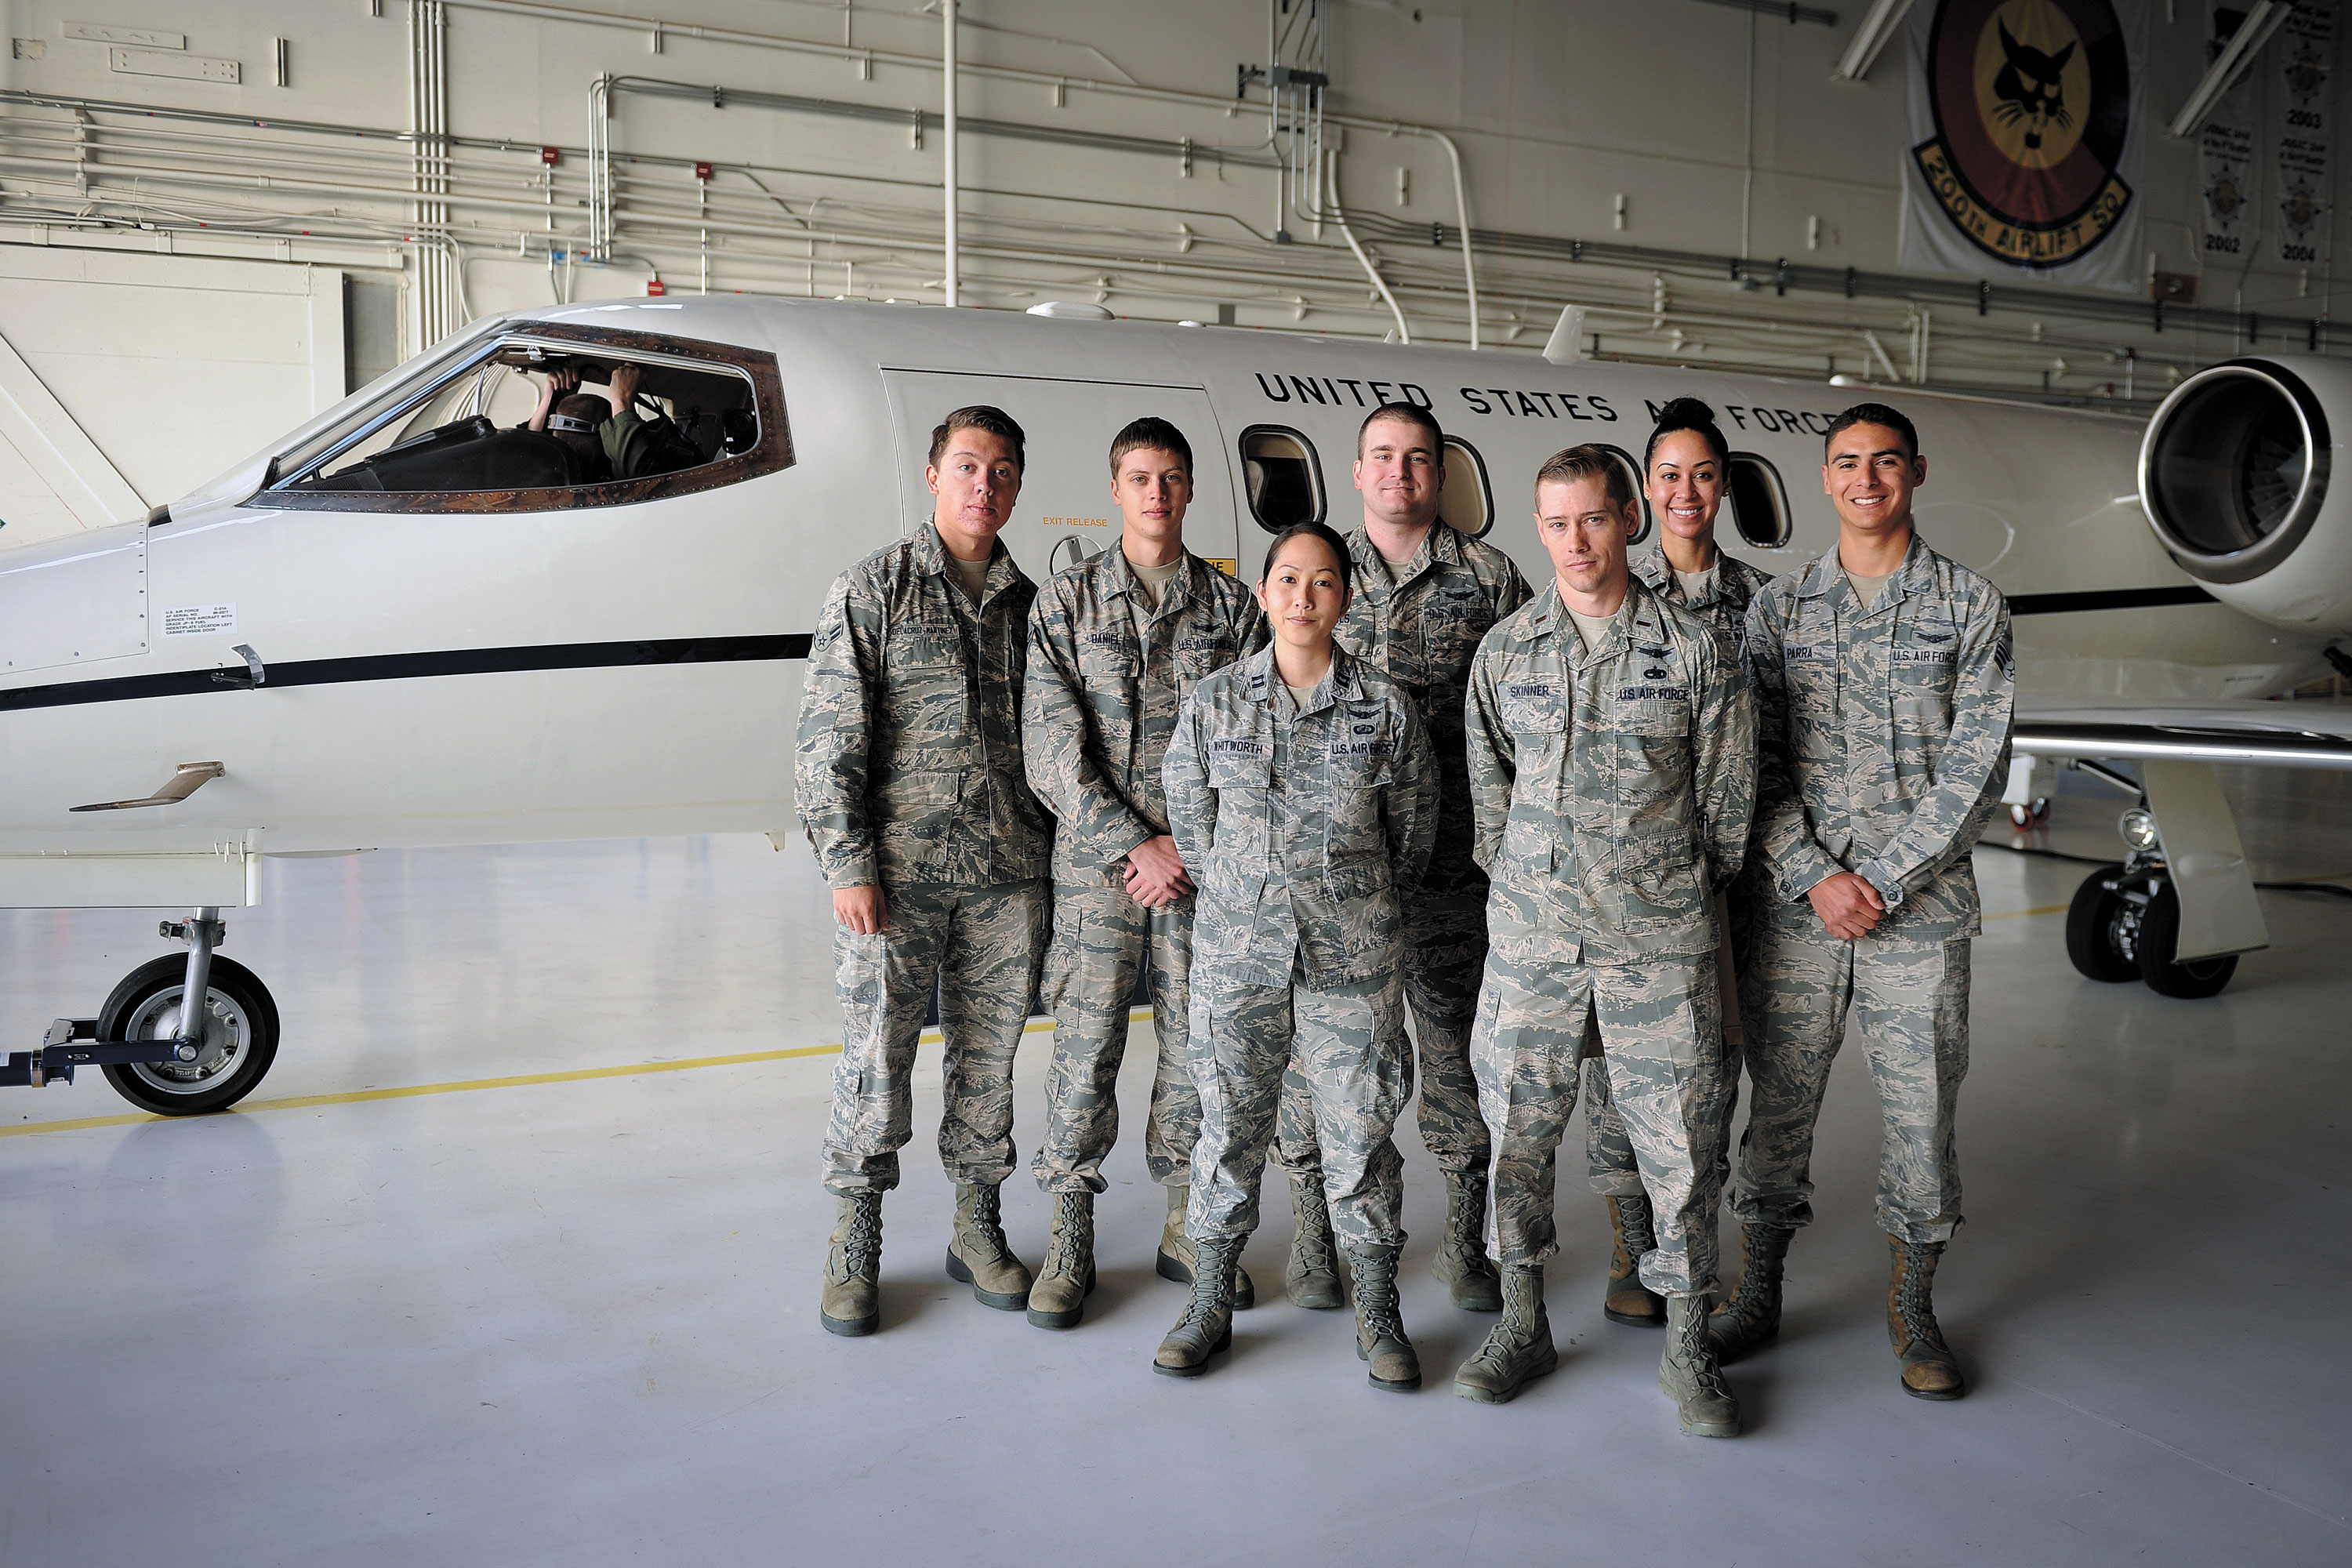 U.S. Air Force photo/Dennis Rogers Members of the 2nd Space Operations Squadron pose at Peterson Air Force Base, Colorado, before boarding a flight to their Alternate Master Control Station to complete a transfer operation June 5, 2015. 2 SOPS traveled to validate its abilities to carry out the mission of GPS command and control at its backup site there.